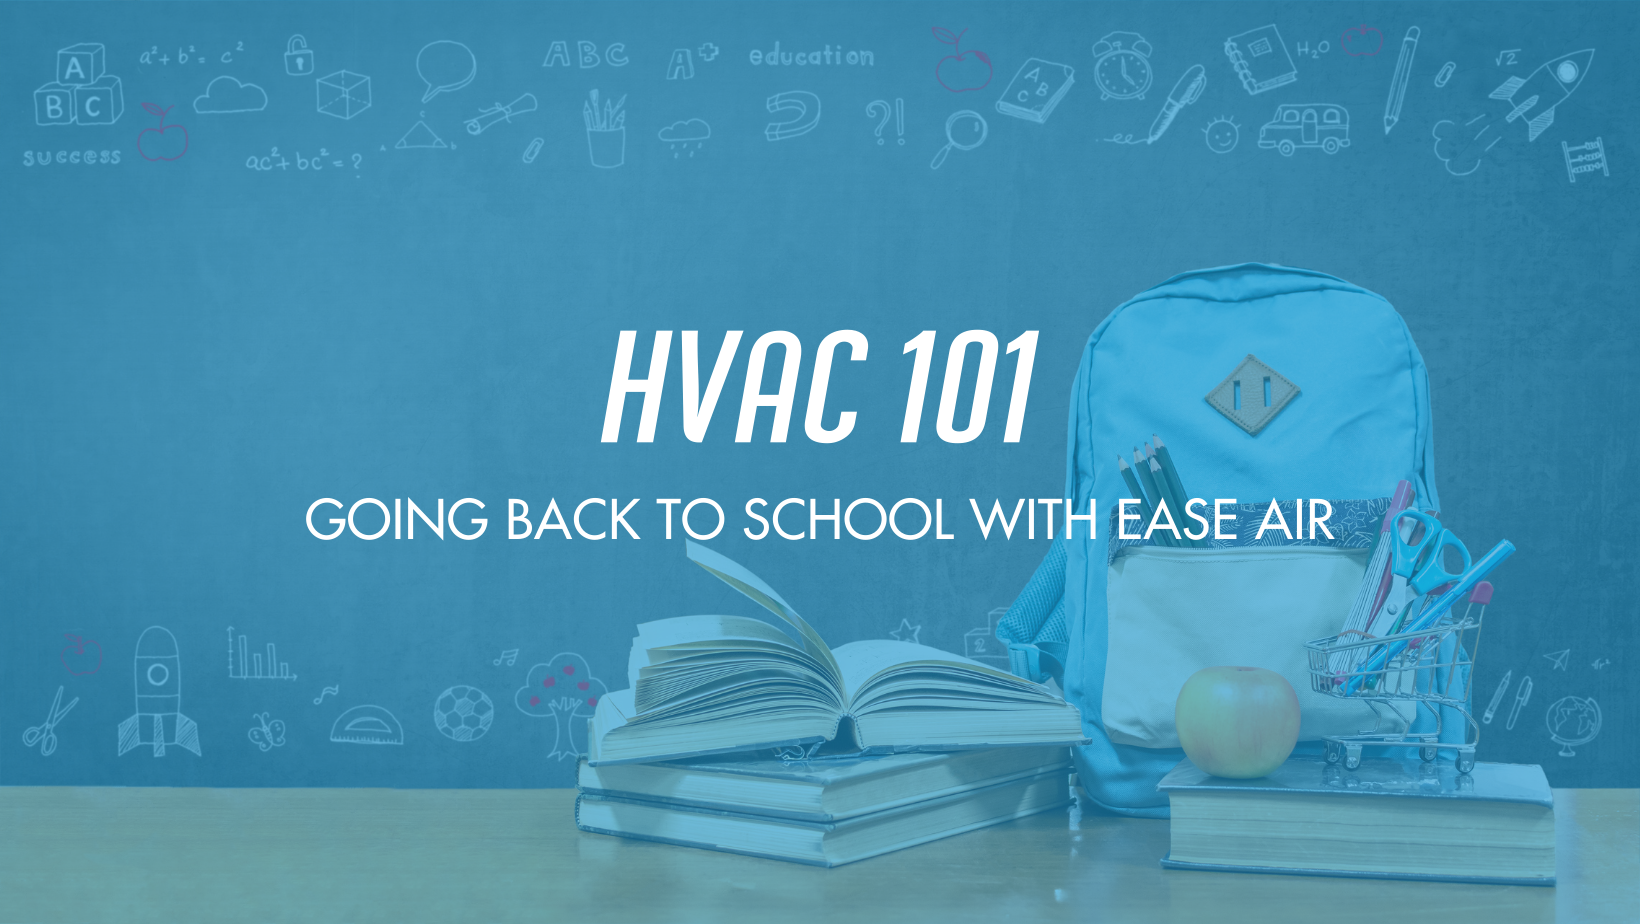 Go Back to School With Ease Air And Study Up on These HVAC Facts